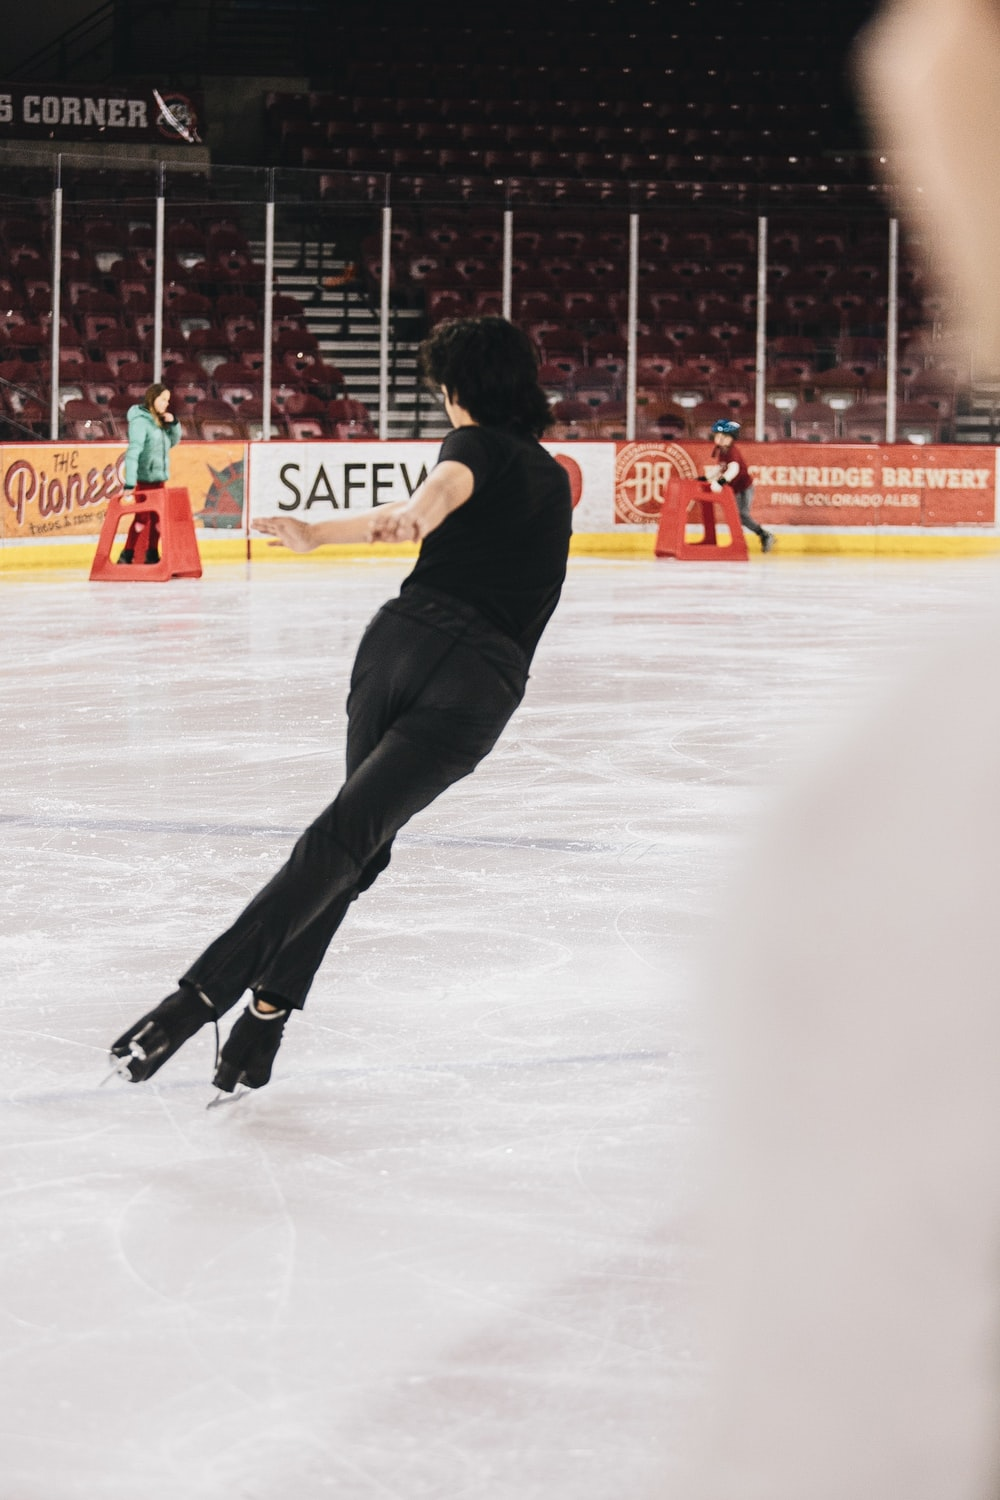 man in black pants and red shirt playing ice hockey